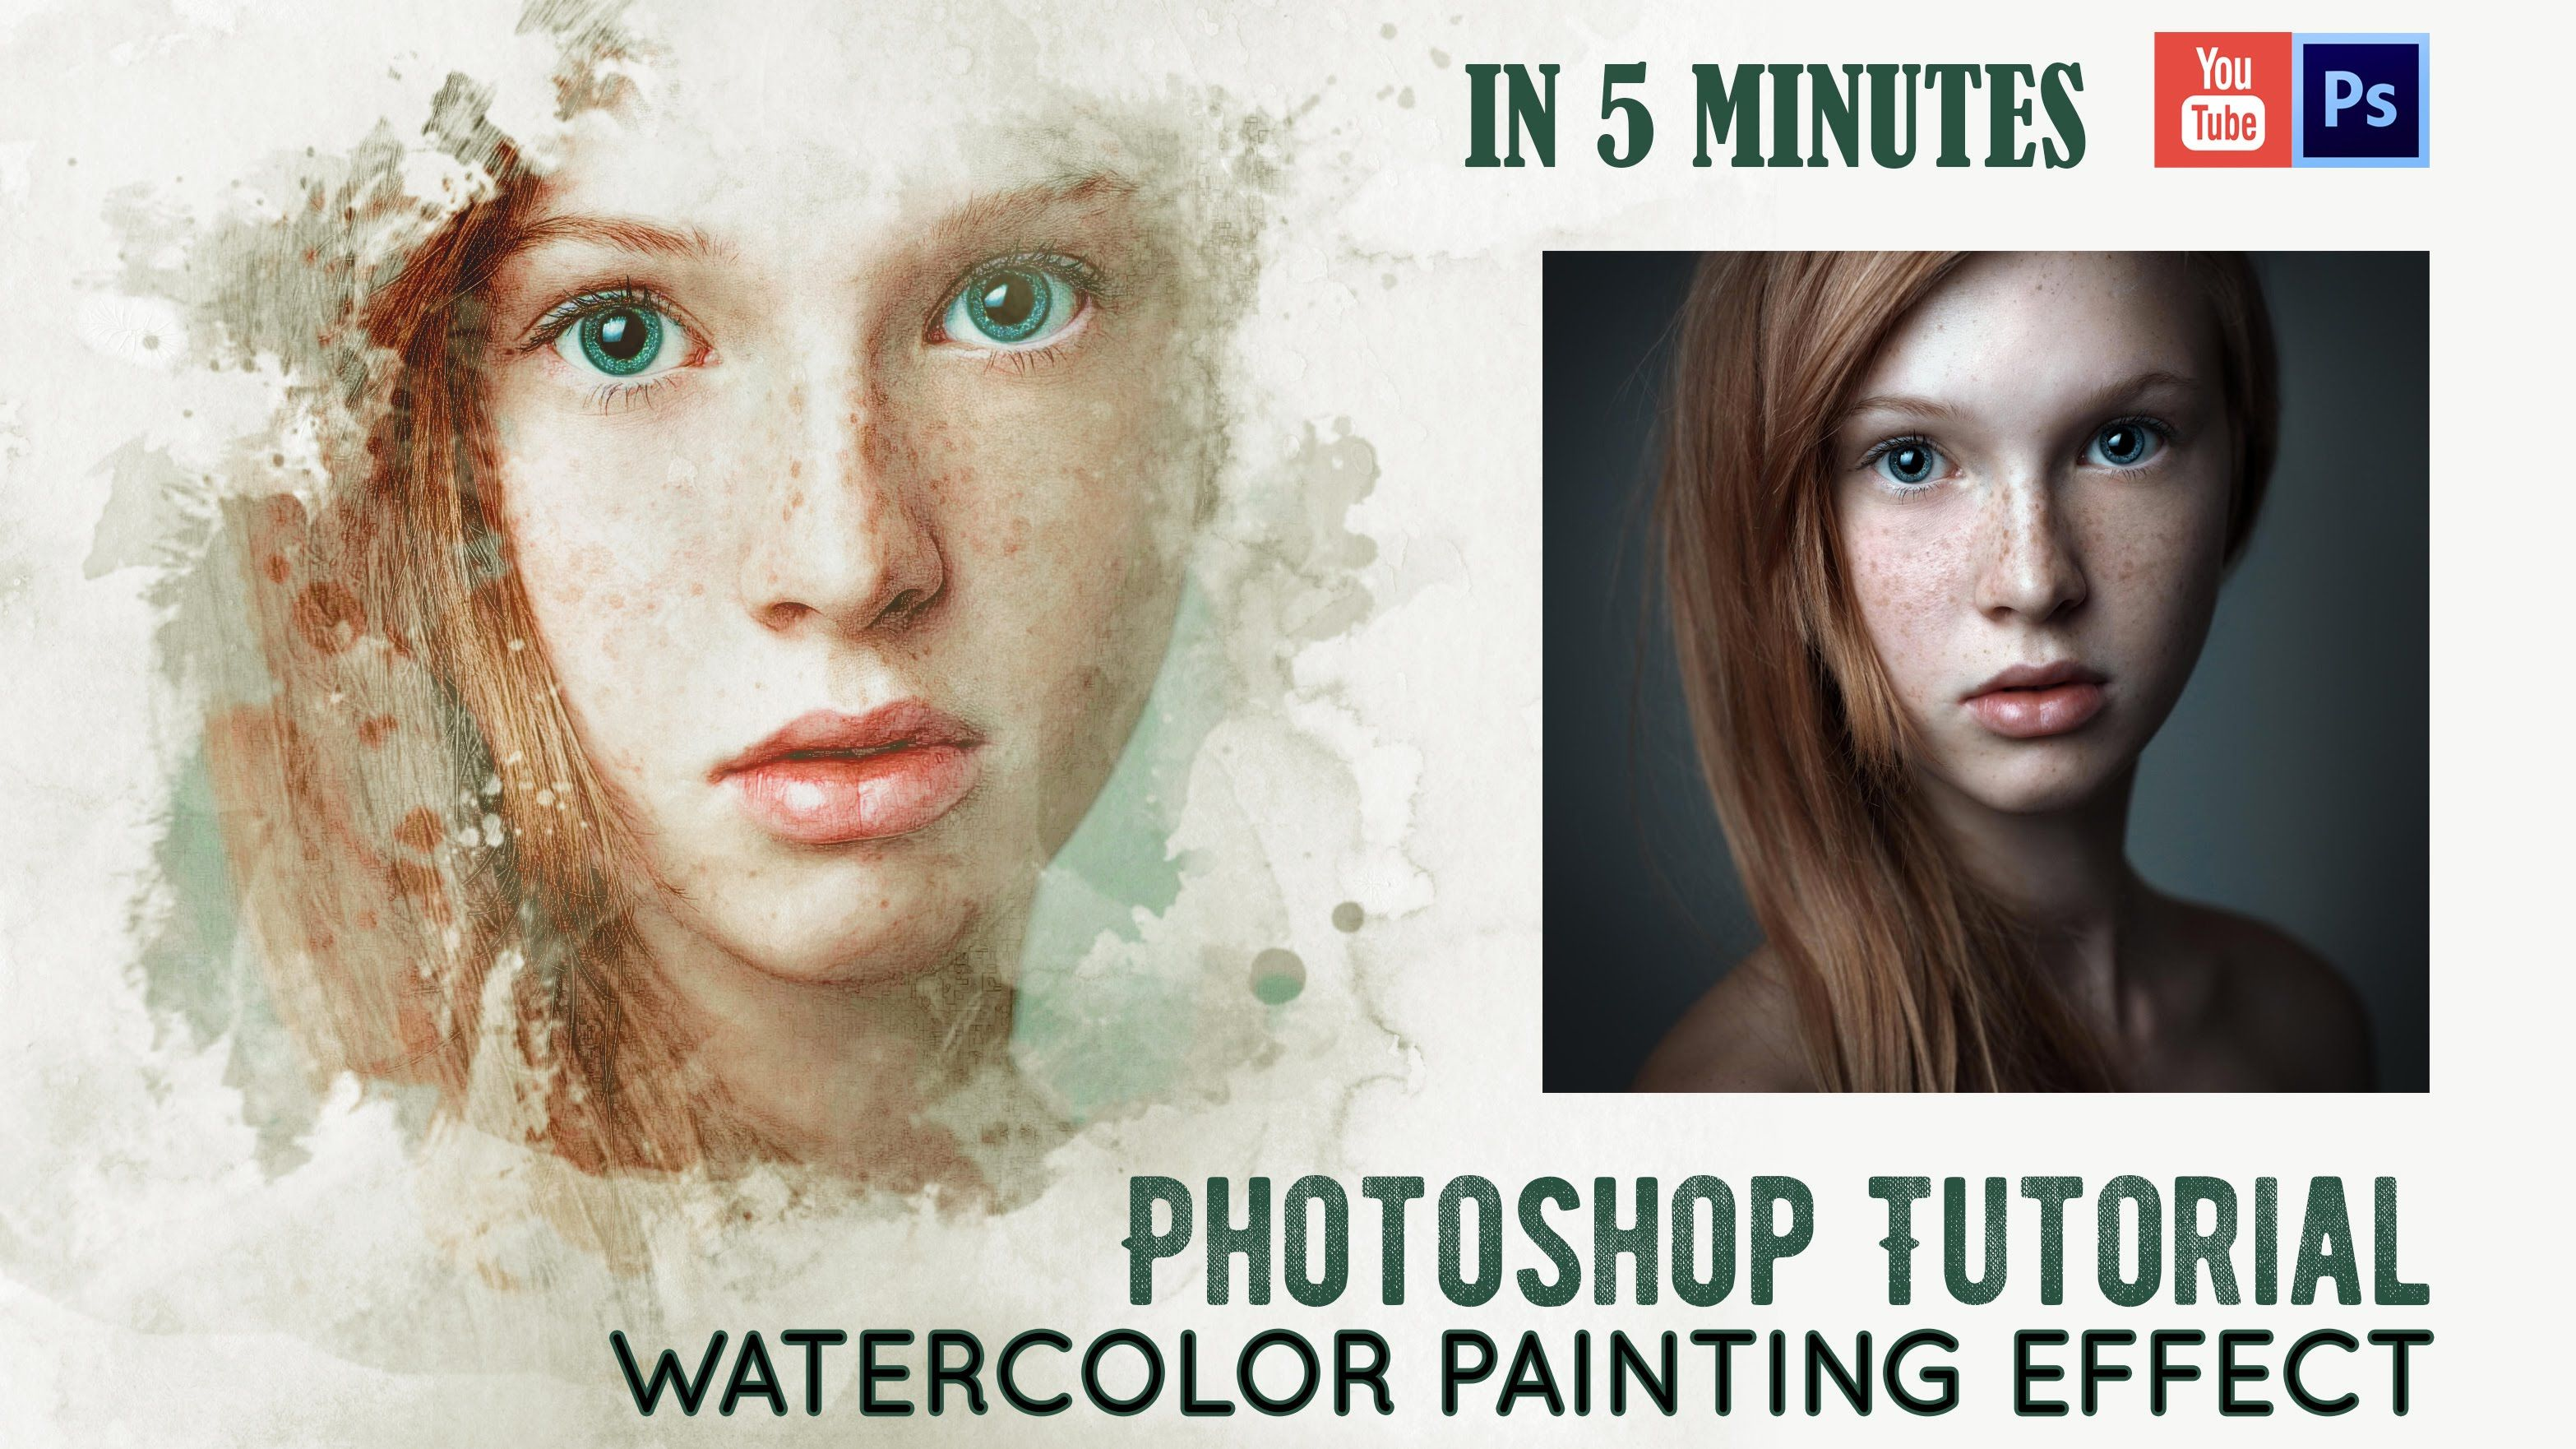 Photoshop Tutorial Photo Manipulation Watercolor Painting